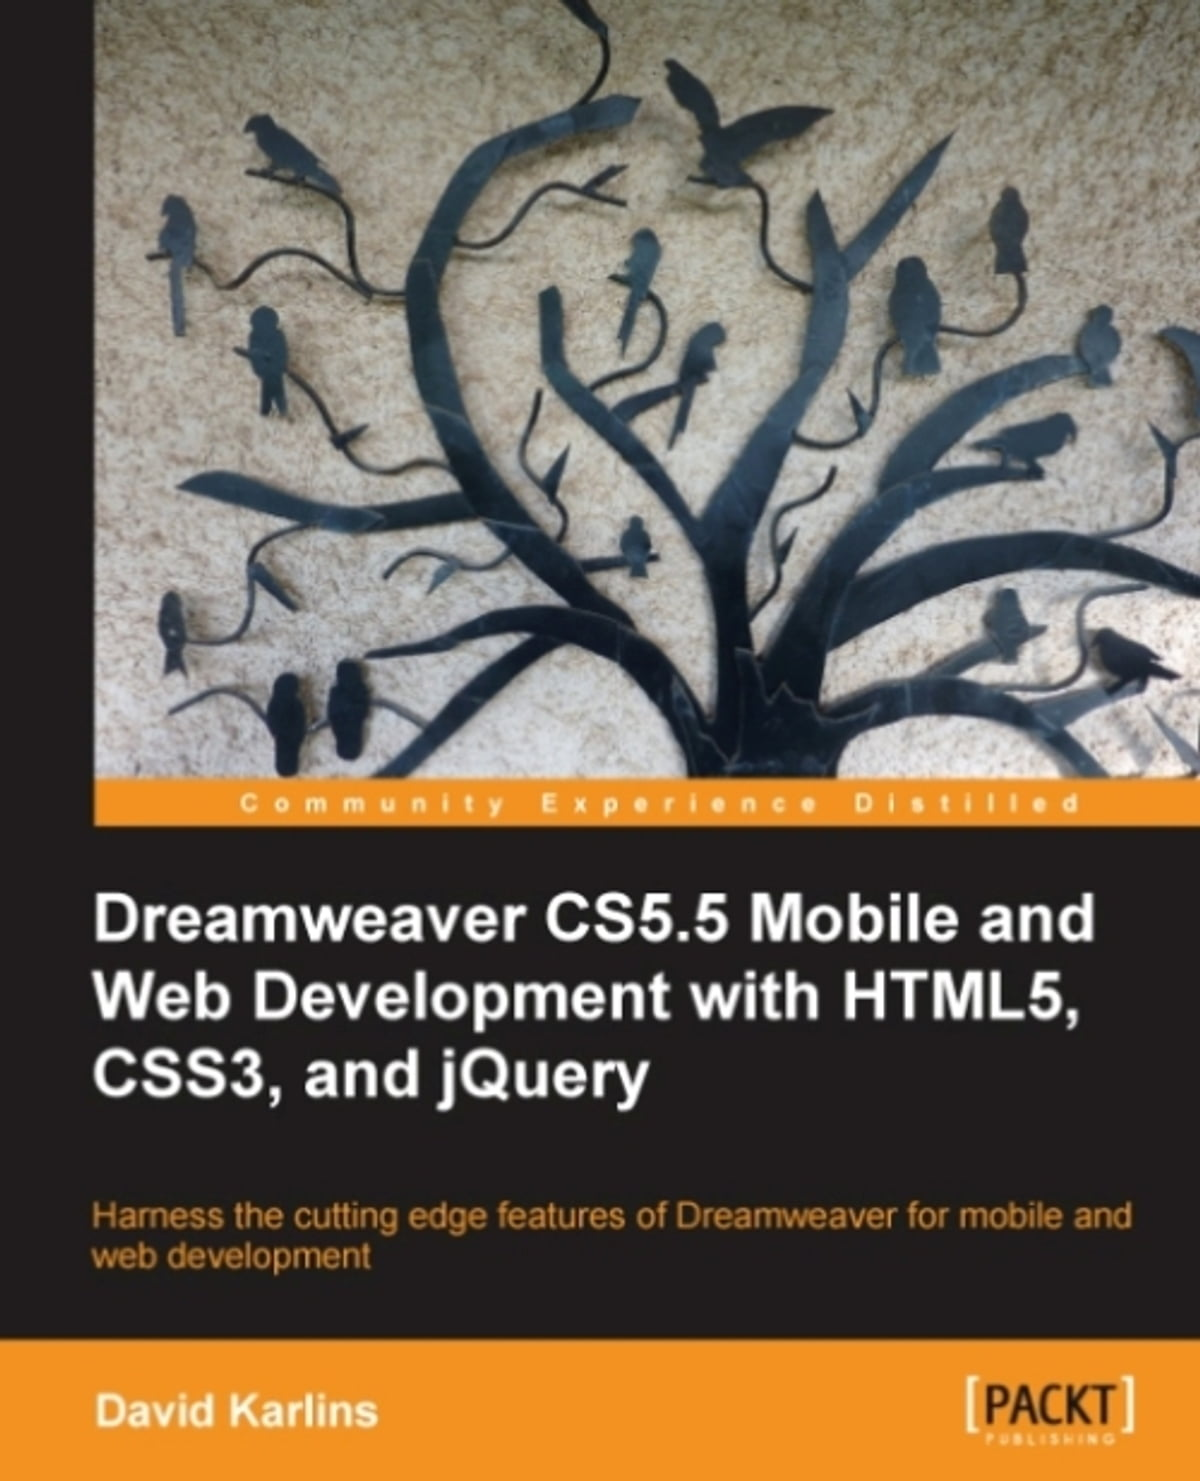 Dreamweaver CS5.5 Mobile and Web Development with HTML5, CSS3, and jQuery  eBook by David Karlins - 9781849691598 | Rakuten Kobo